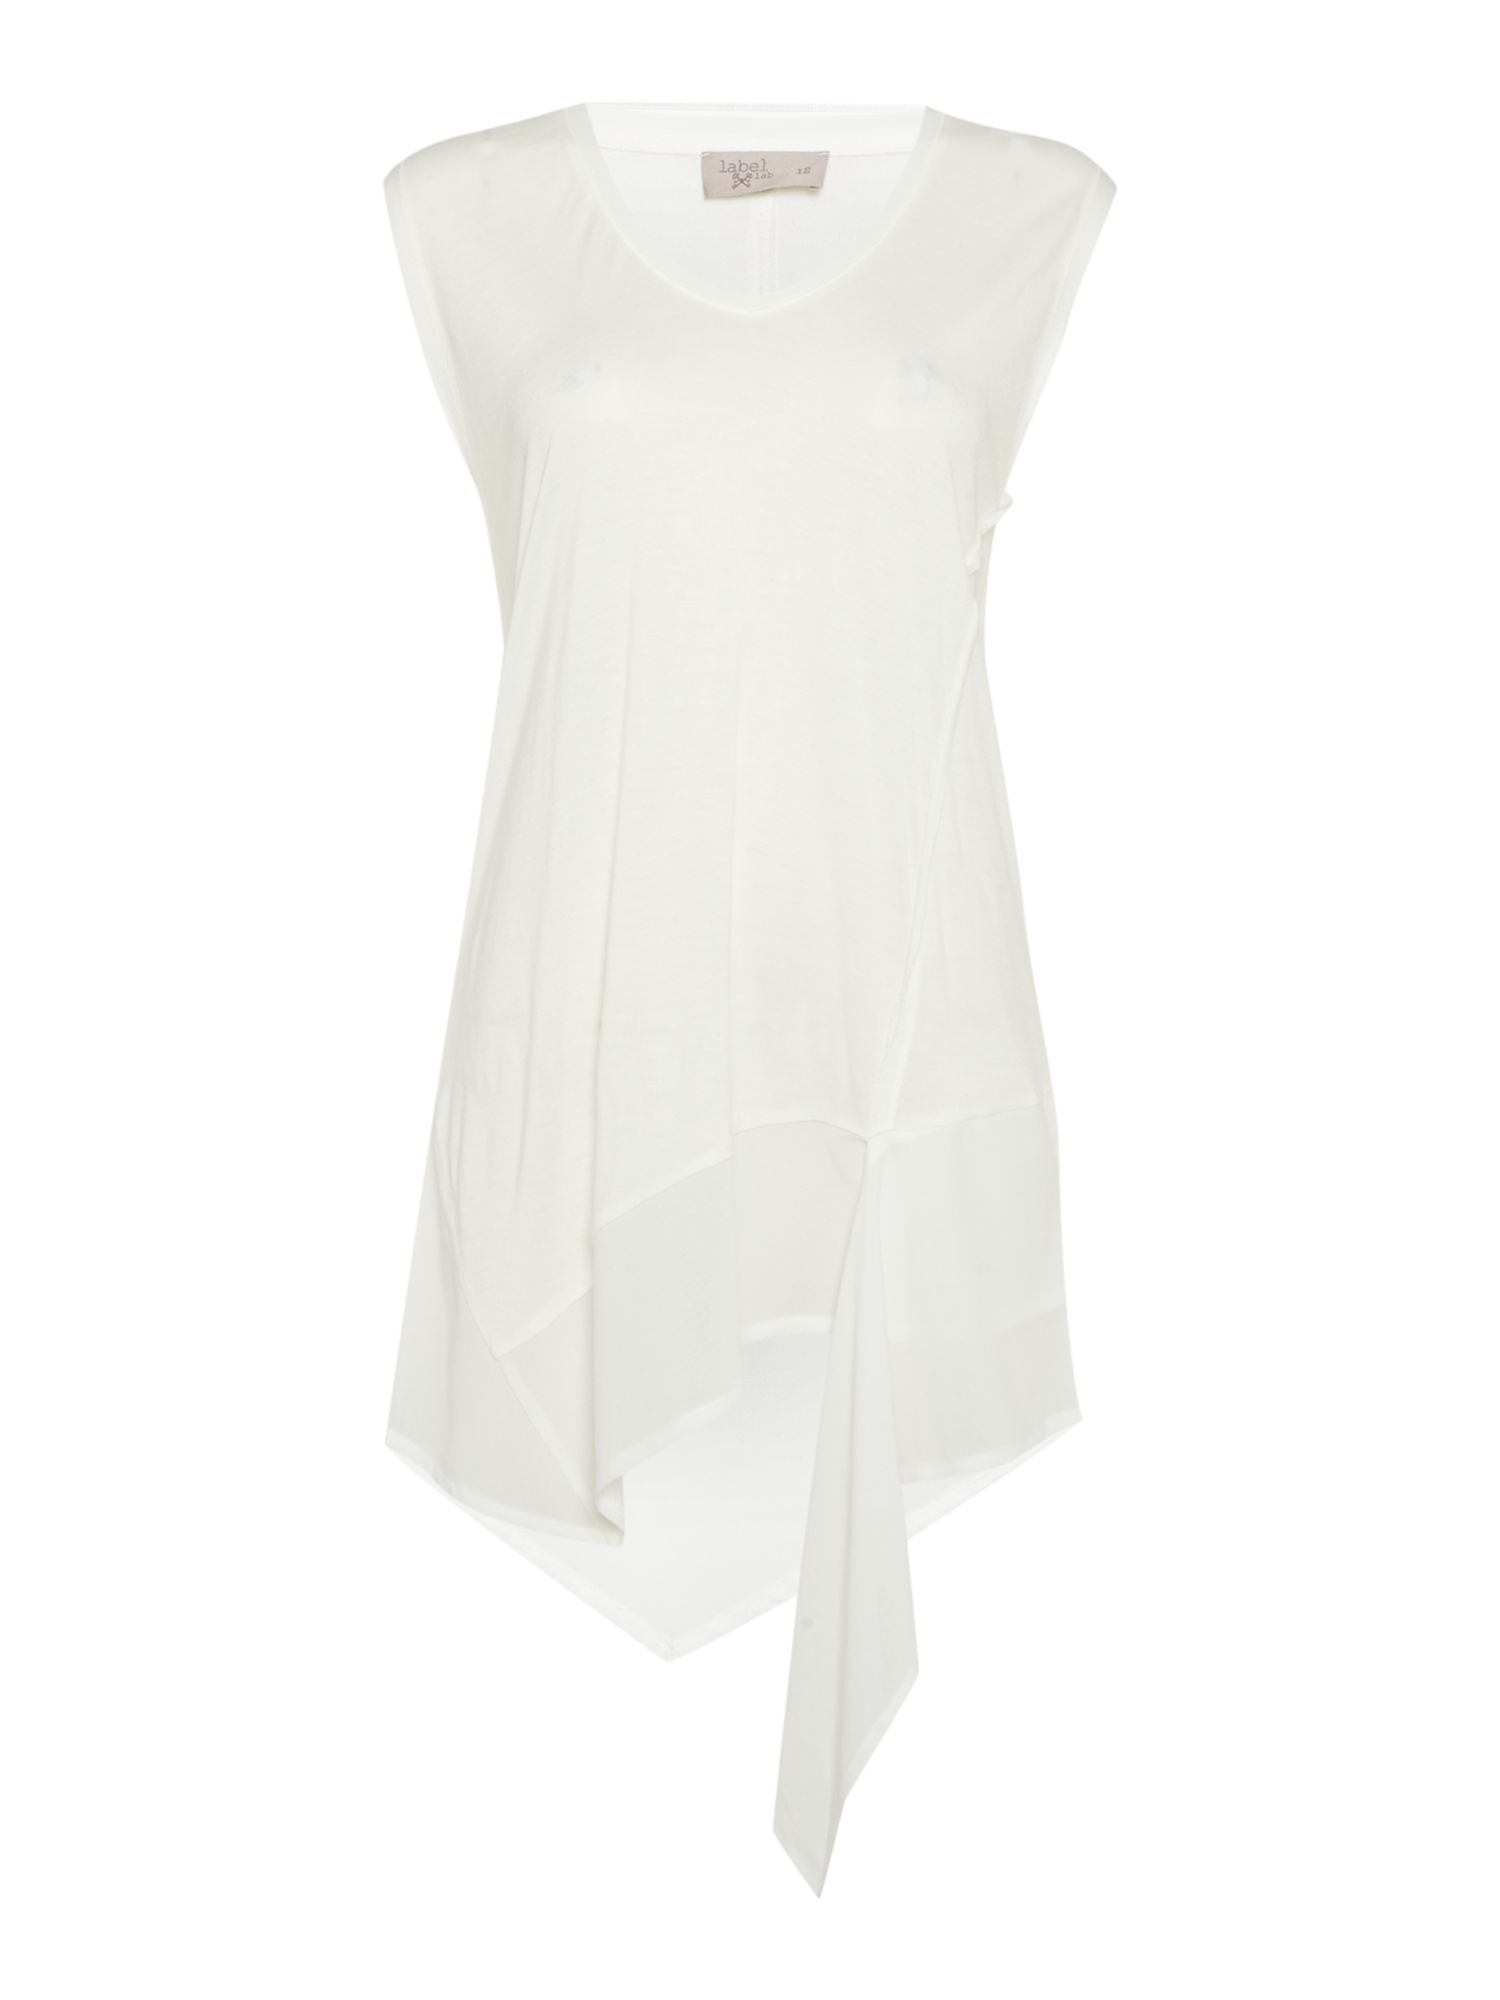 Label Lab Chiffon jersey mix vest, White